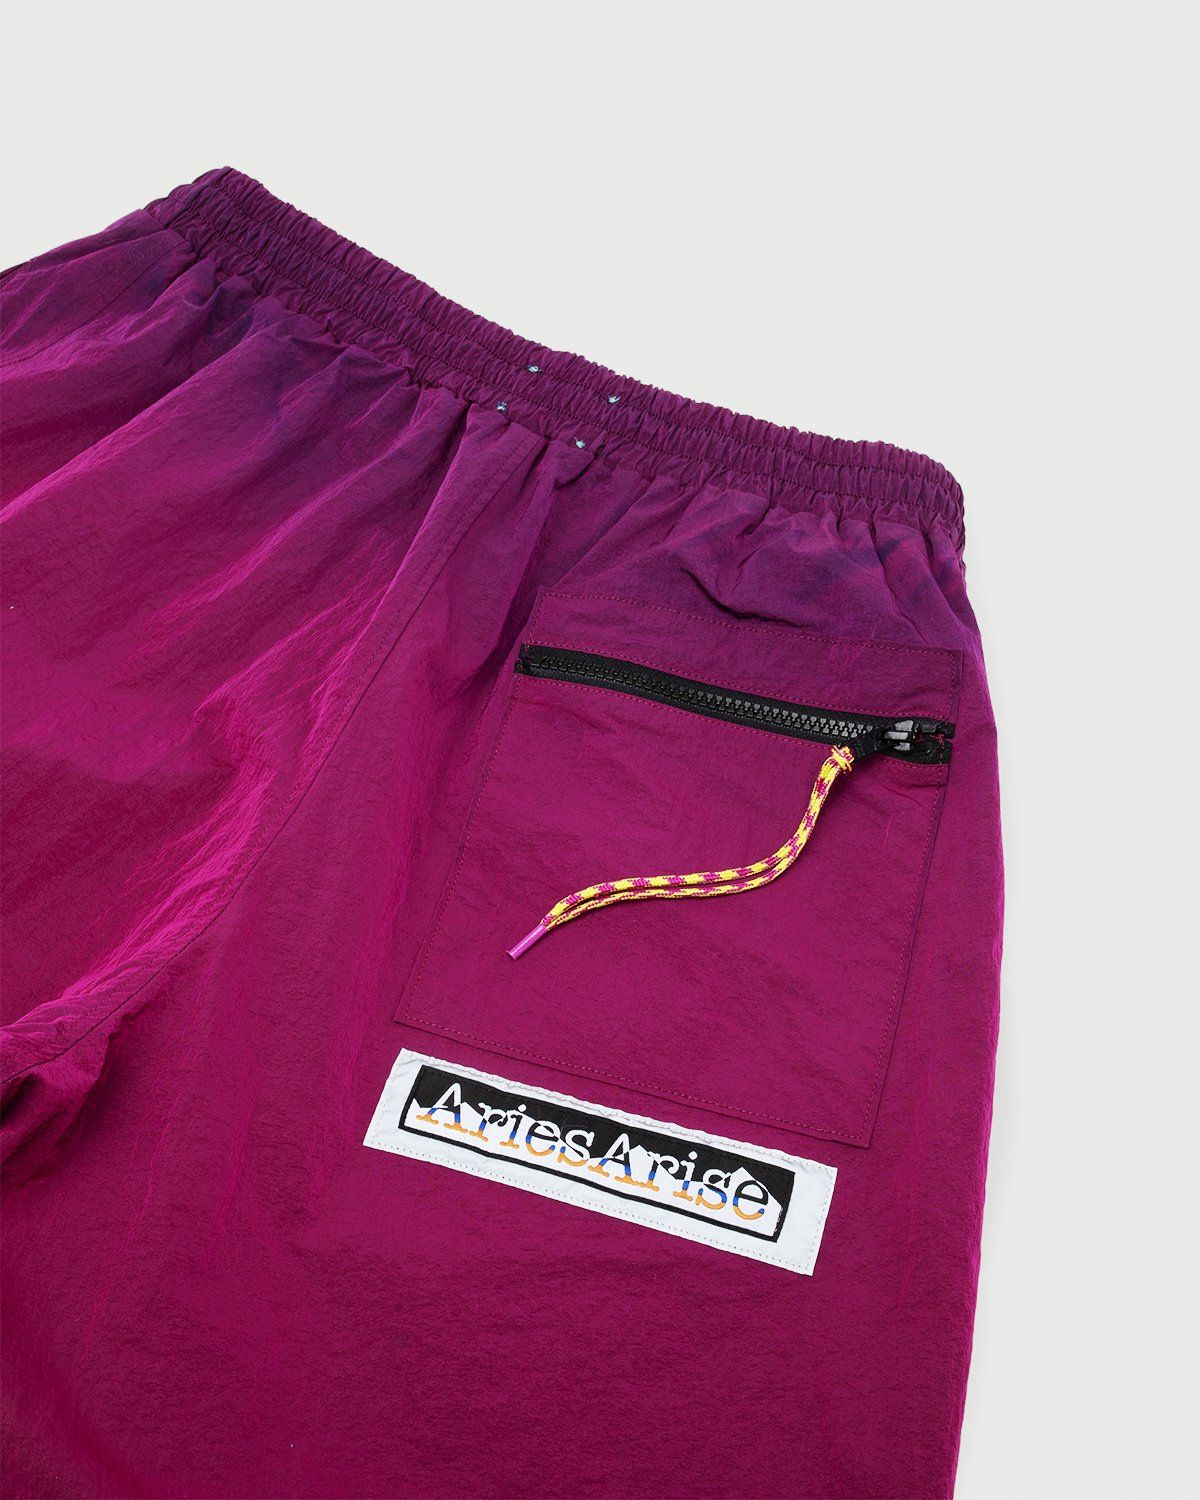 Aries - Ombre Dyed Track Pants Fuchsia - Image 3